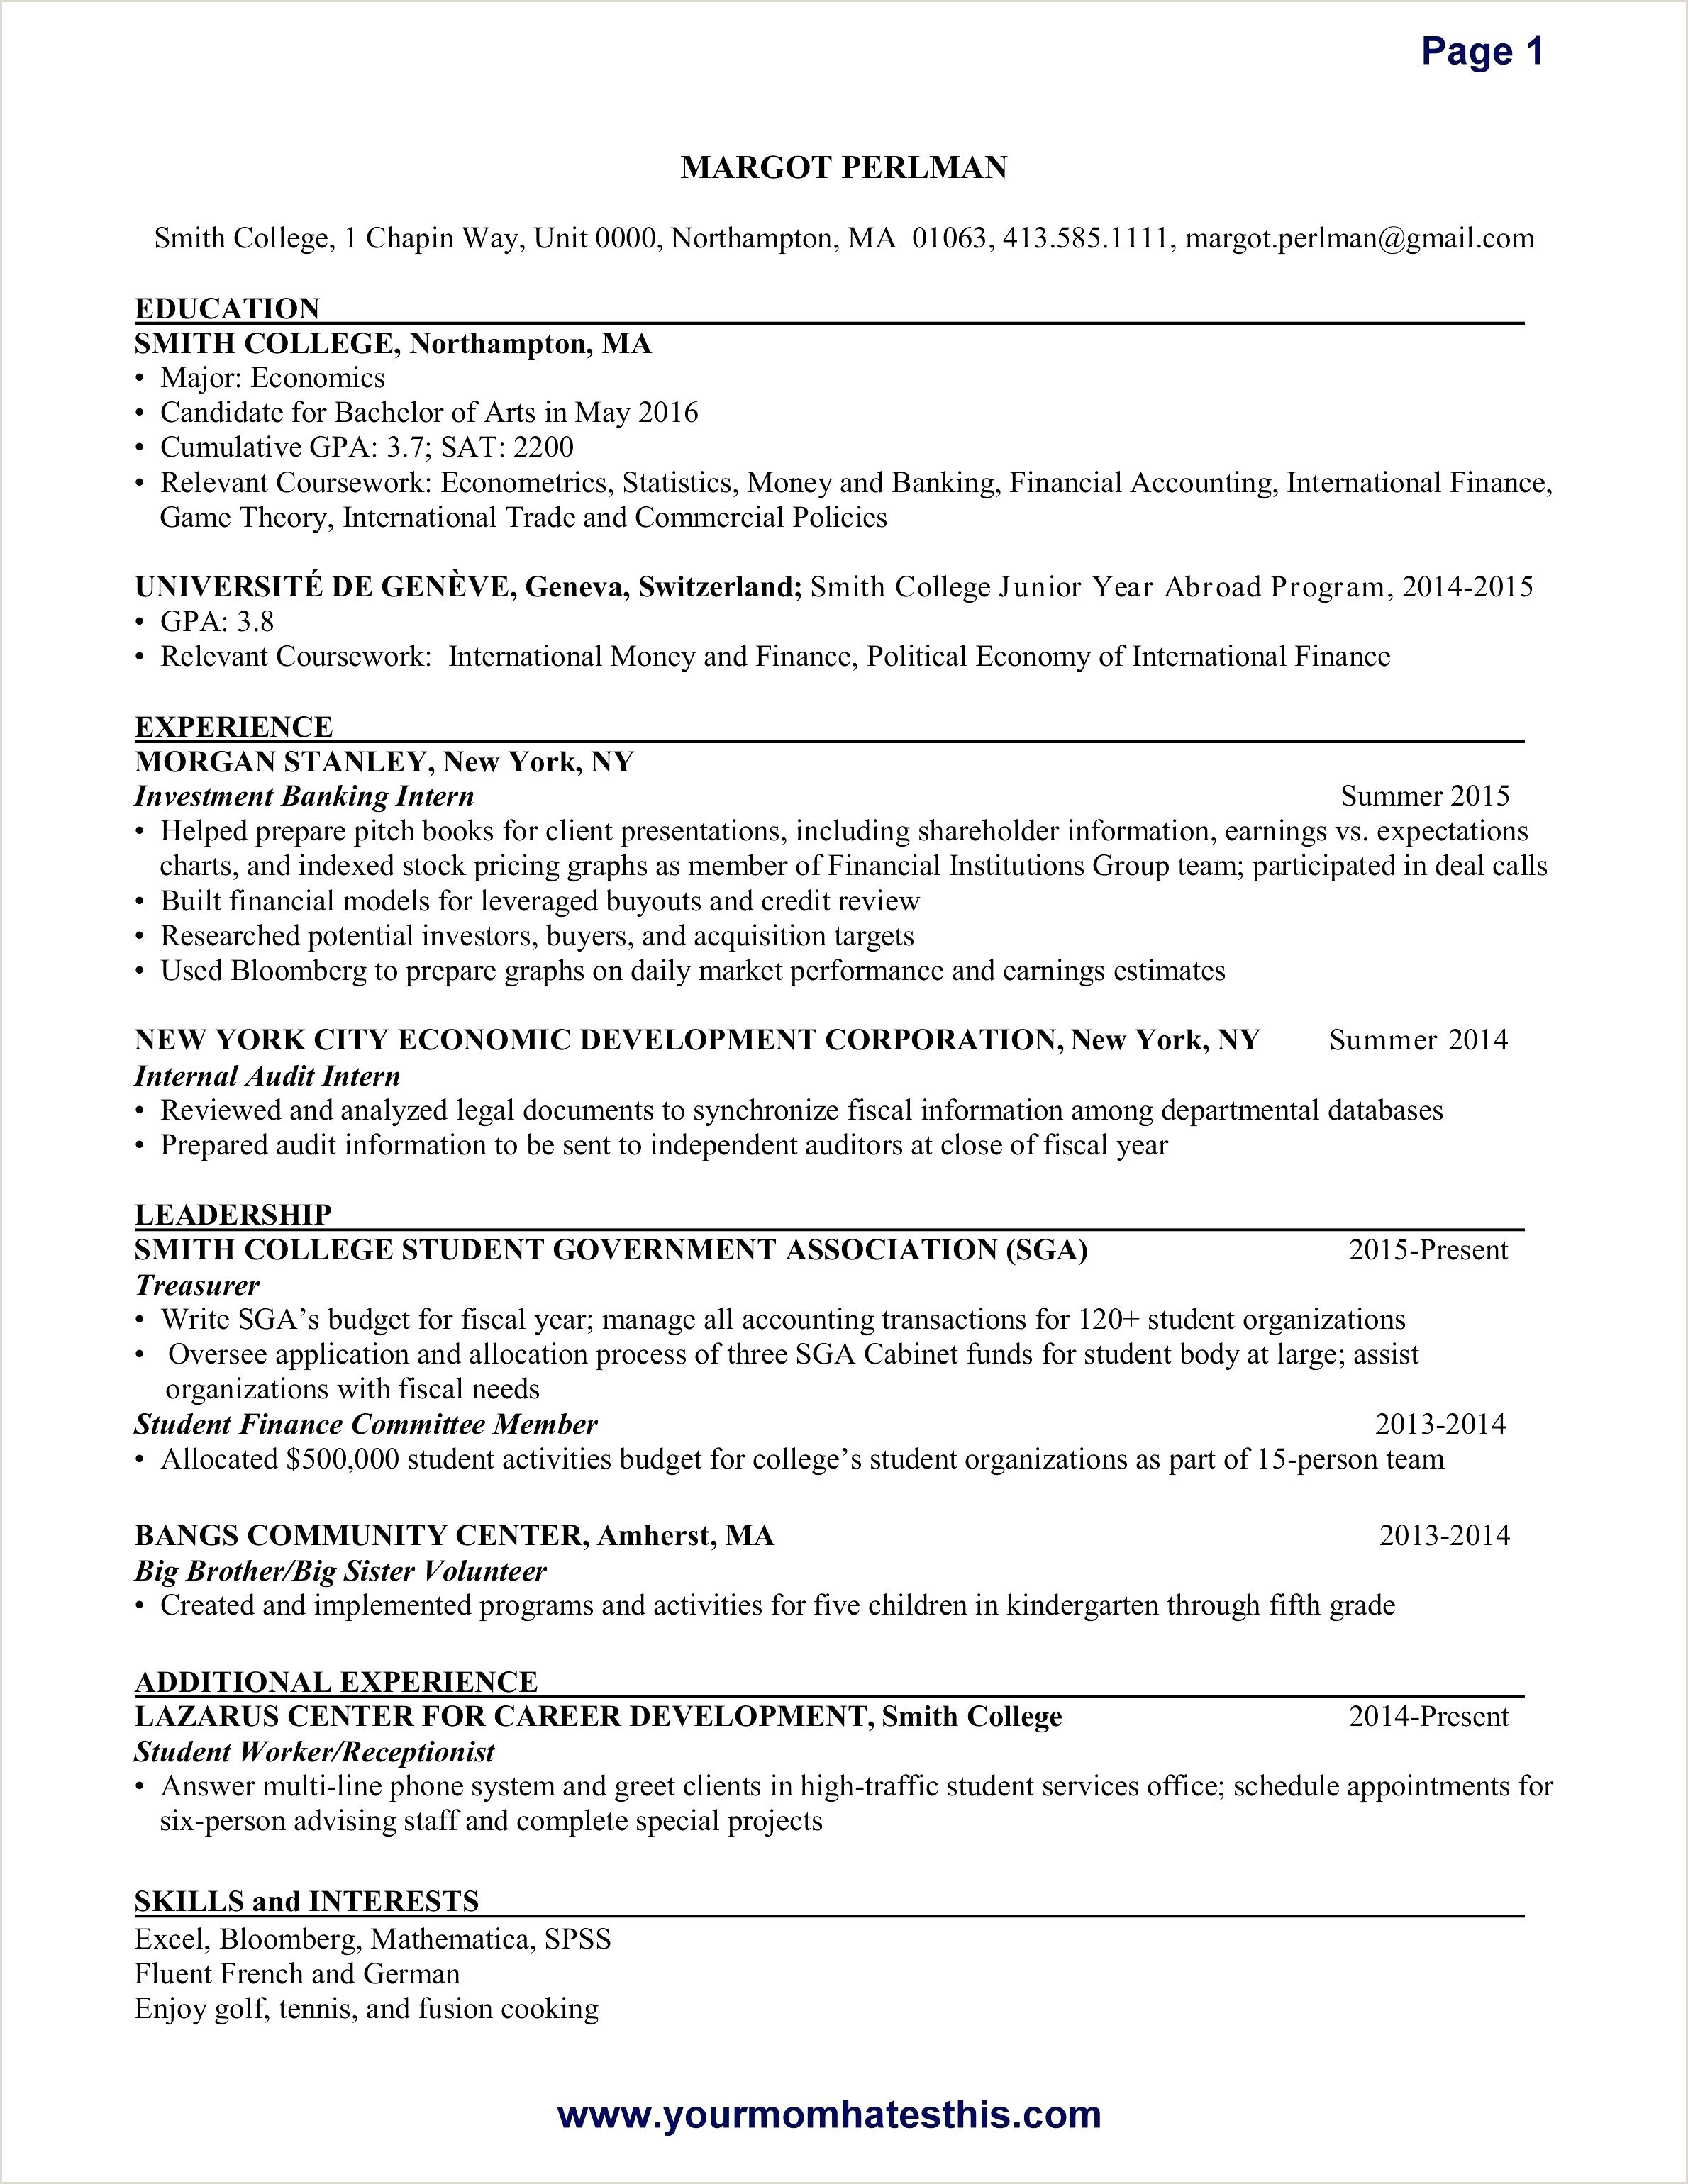 Dental assistant Resume Objectives Examples Hairstyles Dentist Resume Objective Licious Beautiful